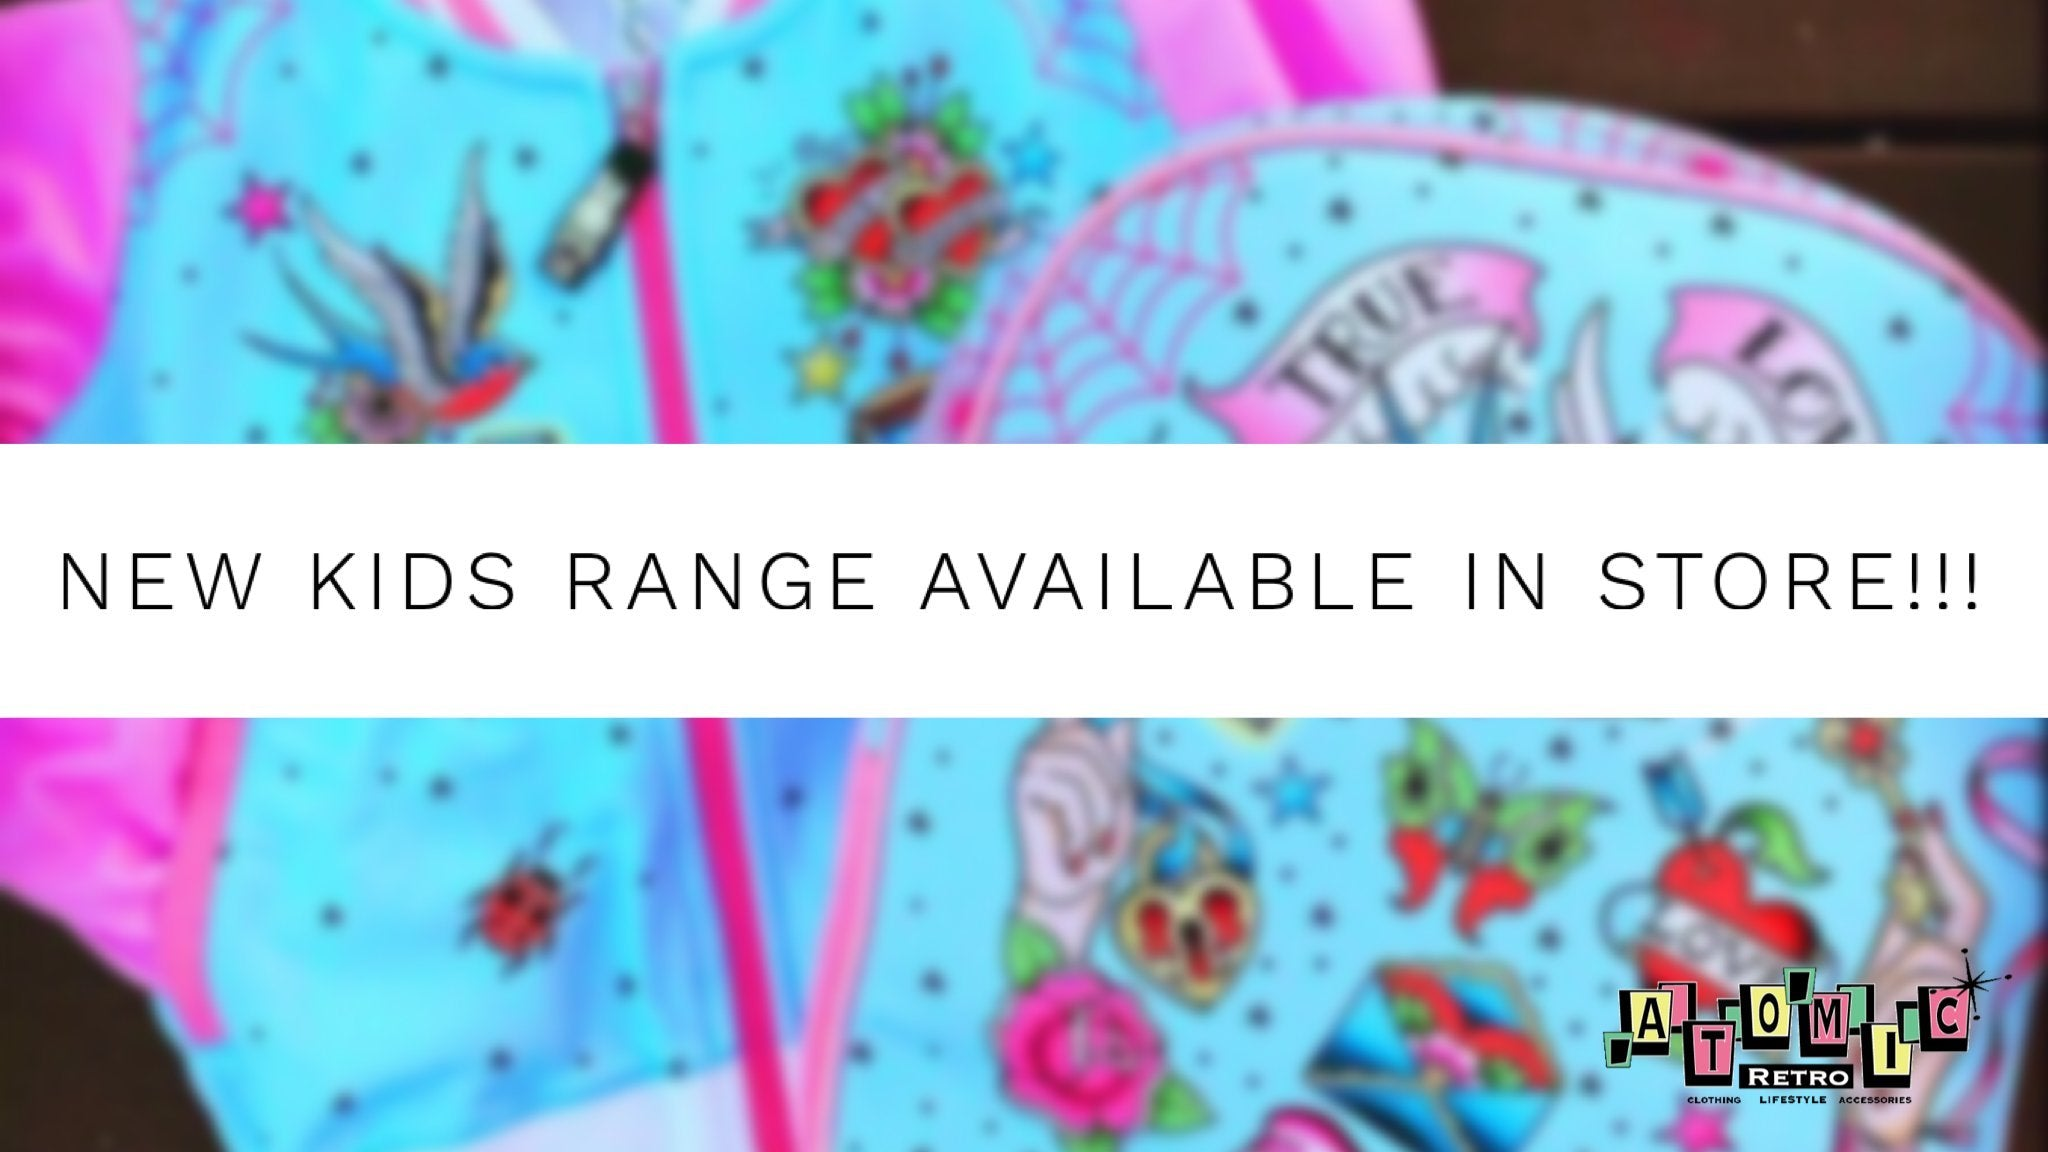 New kids range available!